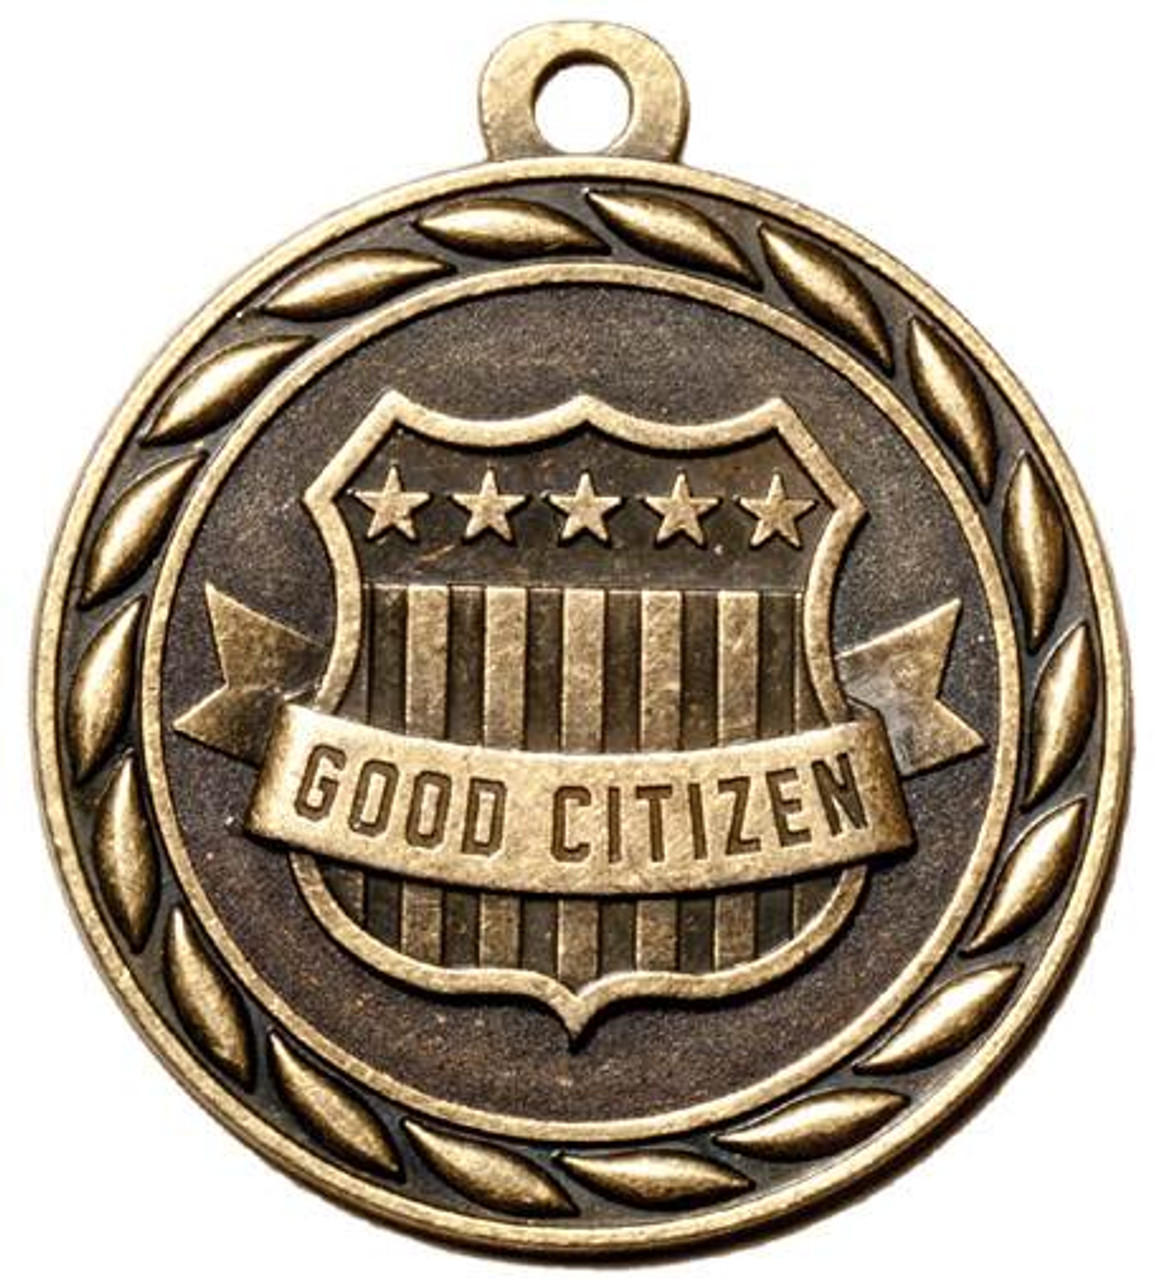 Good Citizen Medal